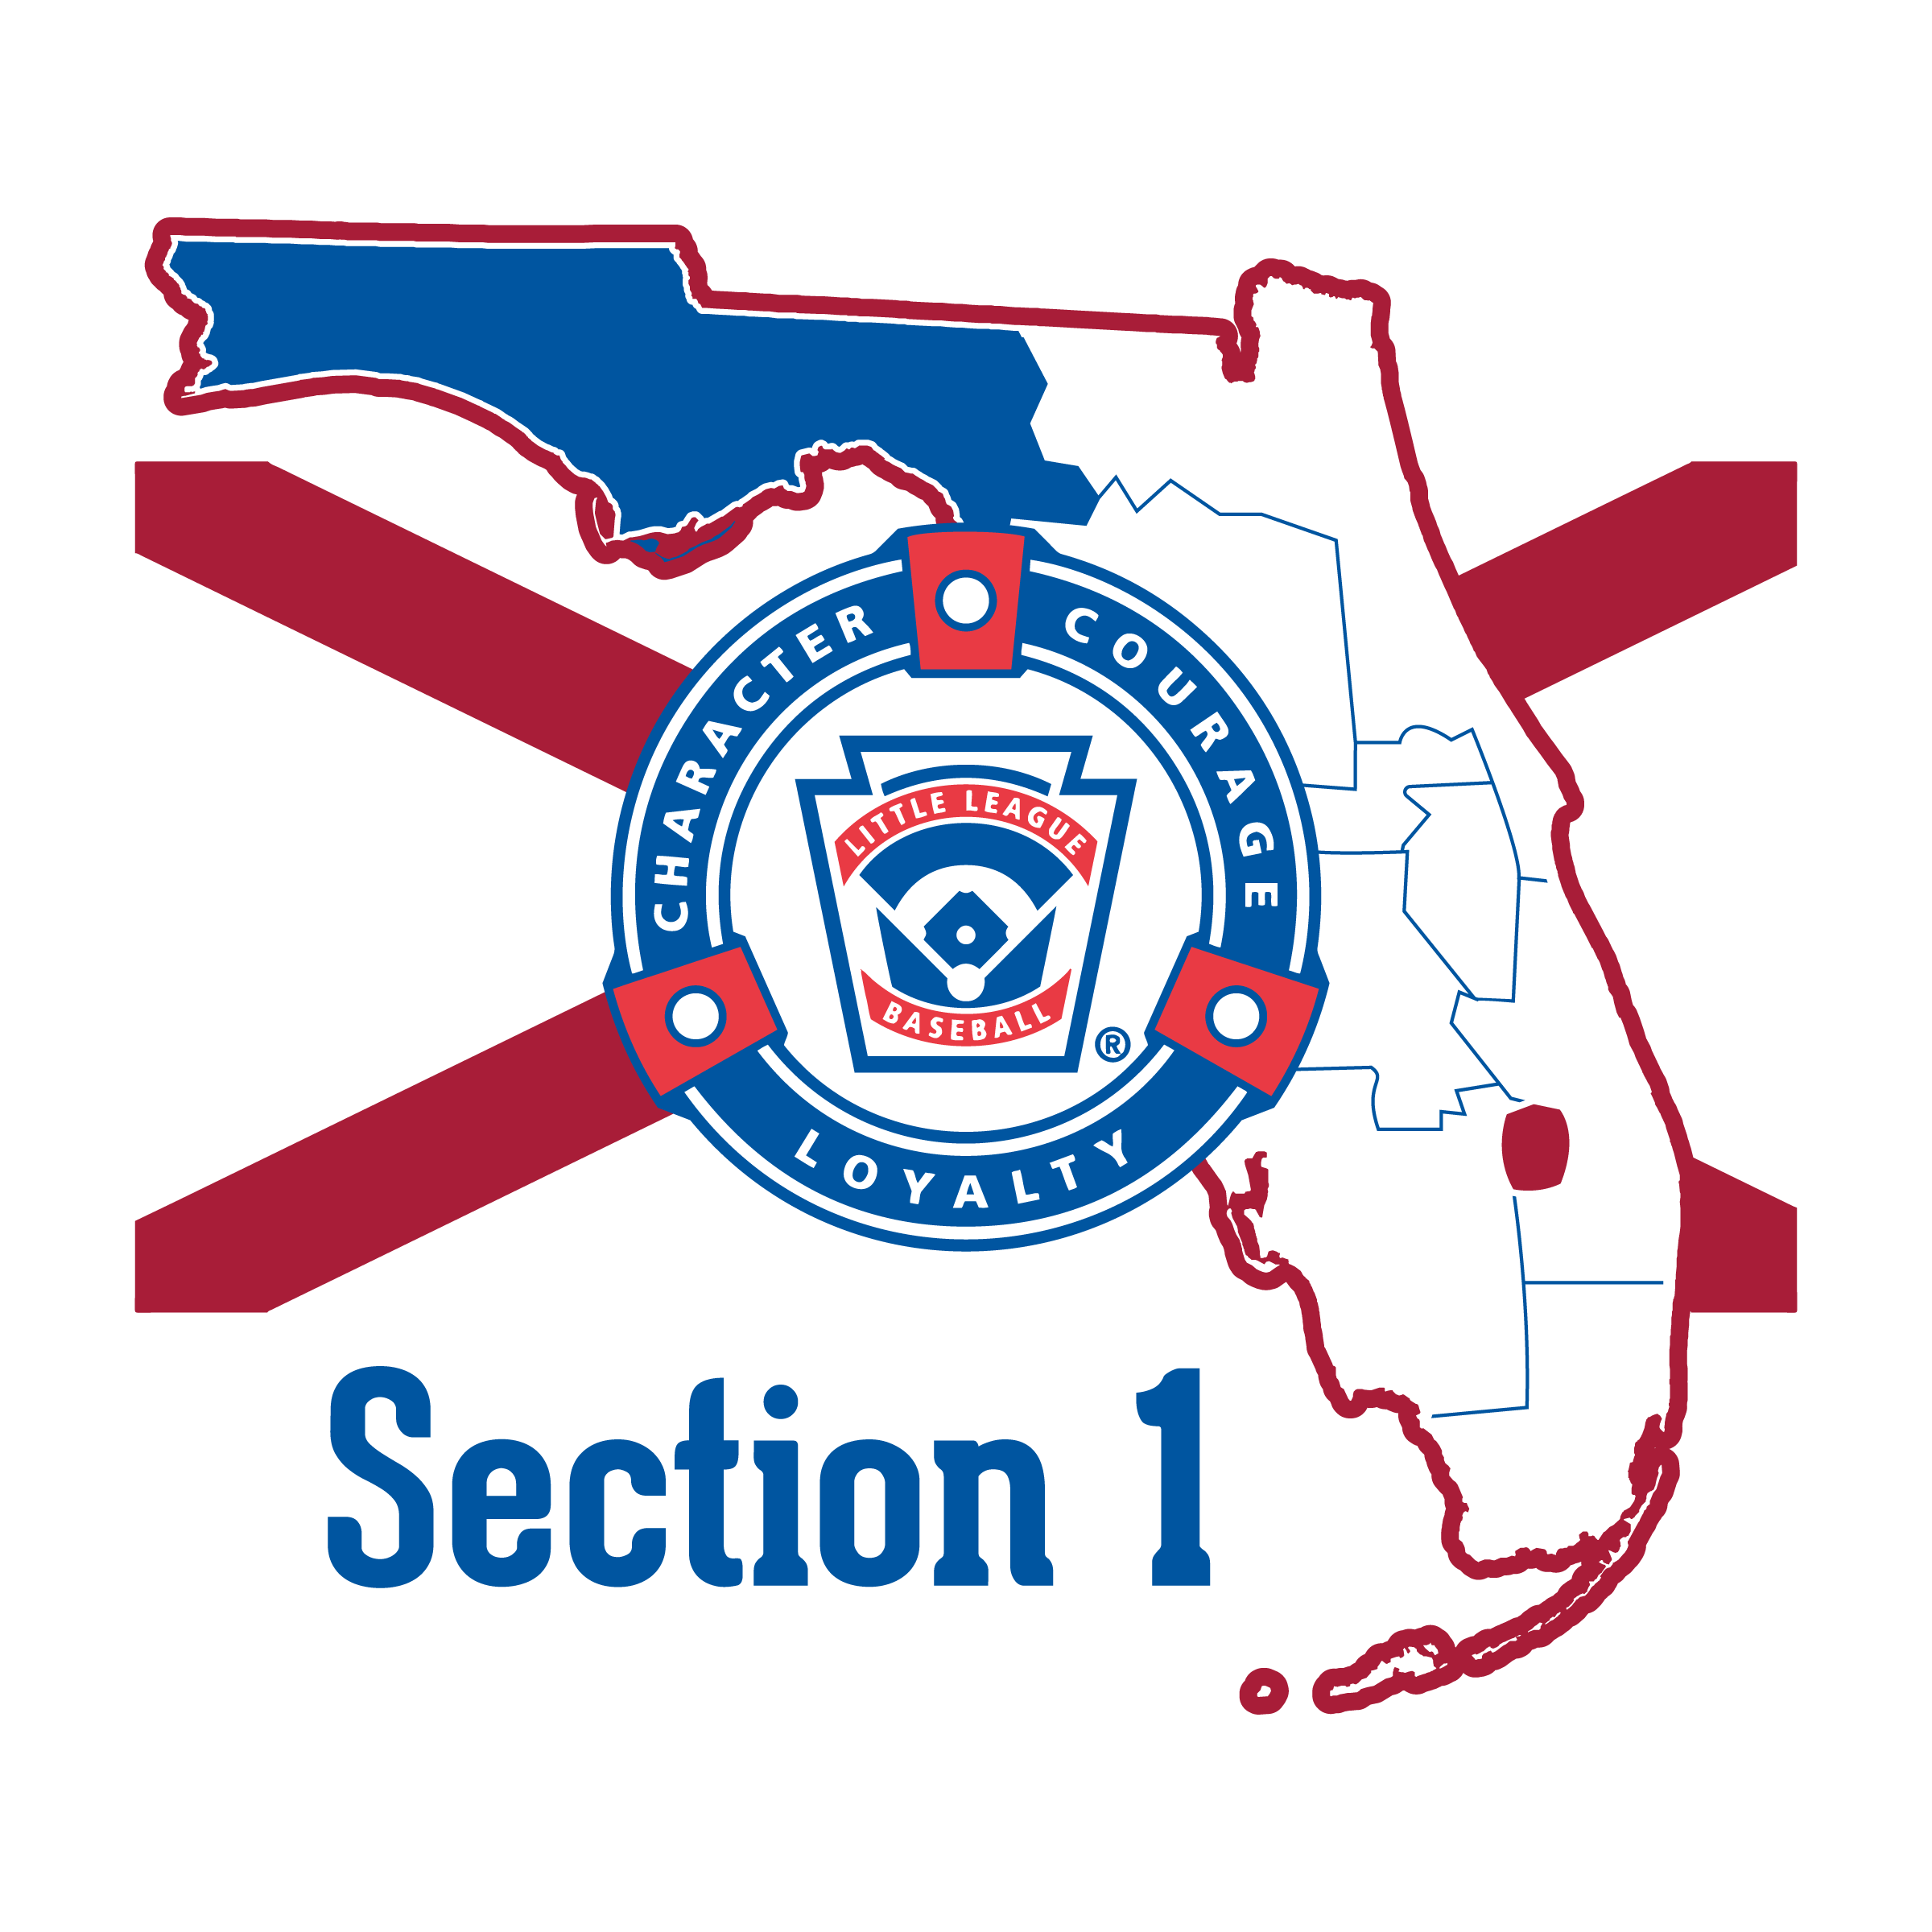 Florida Section 1